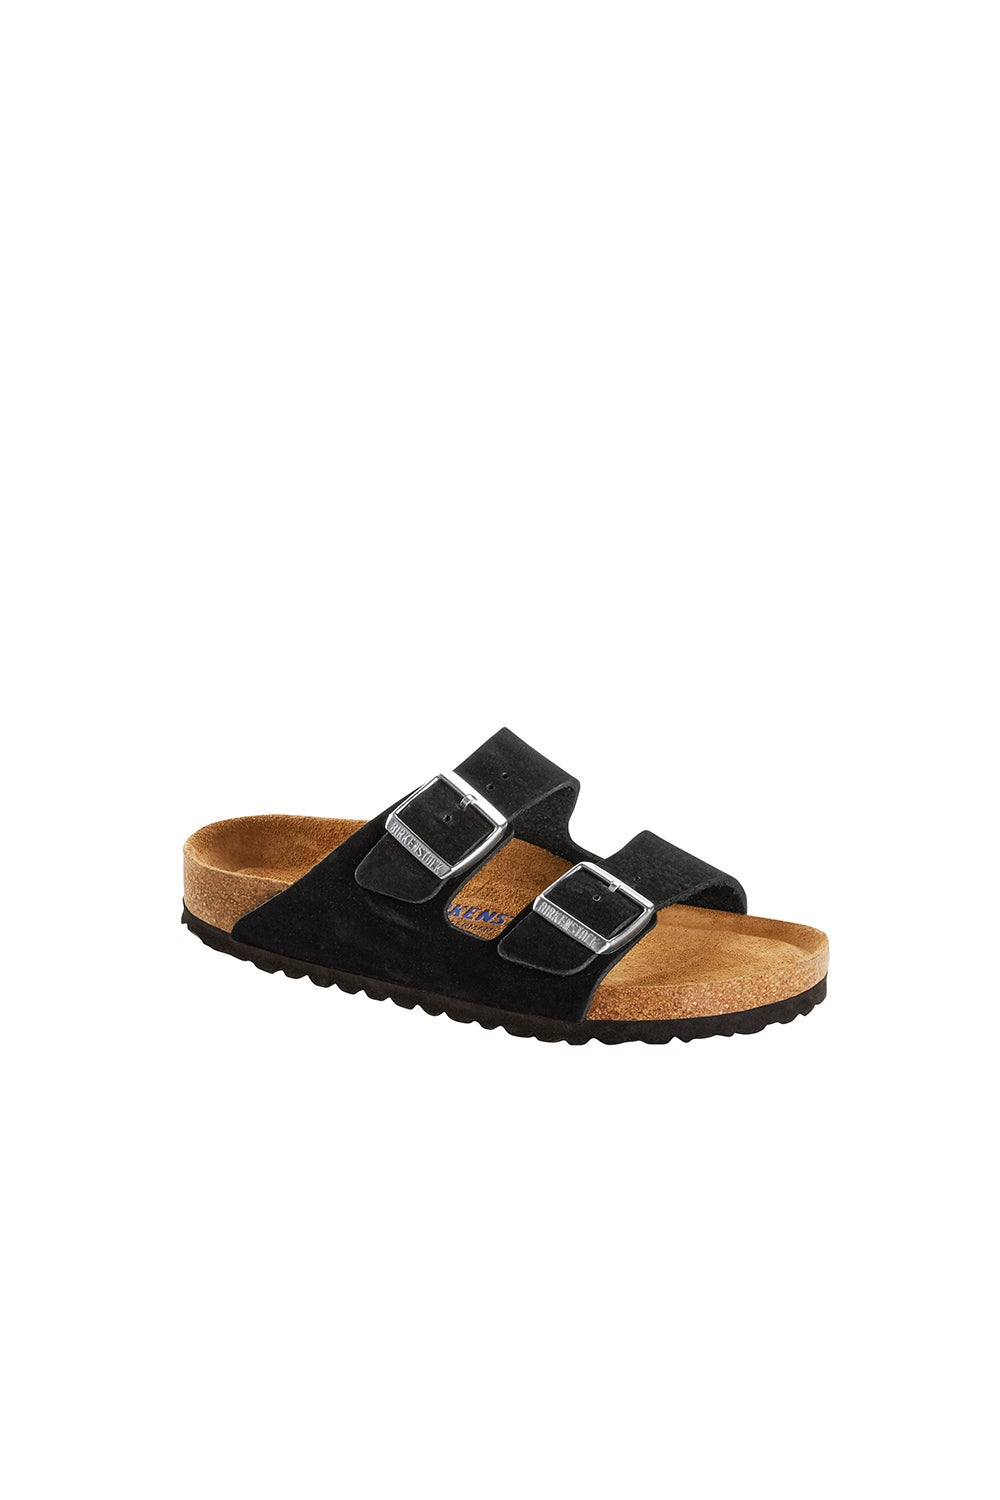 Birkenstock Arizona Soft Nubuck Narrow Fit Black